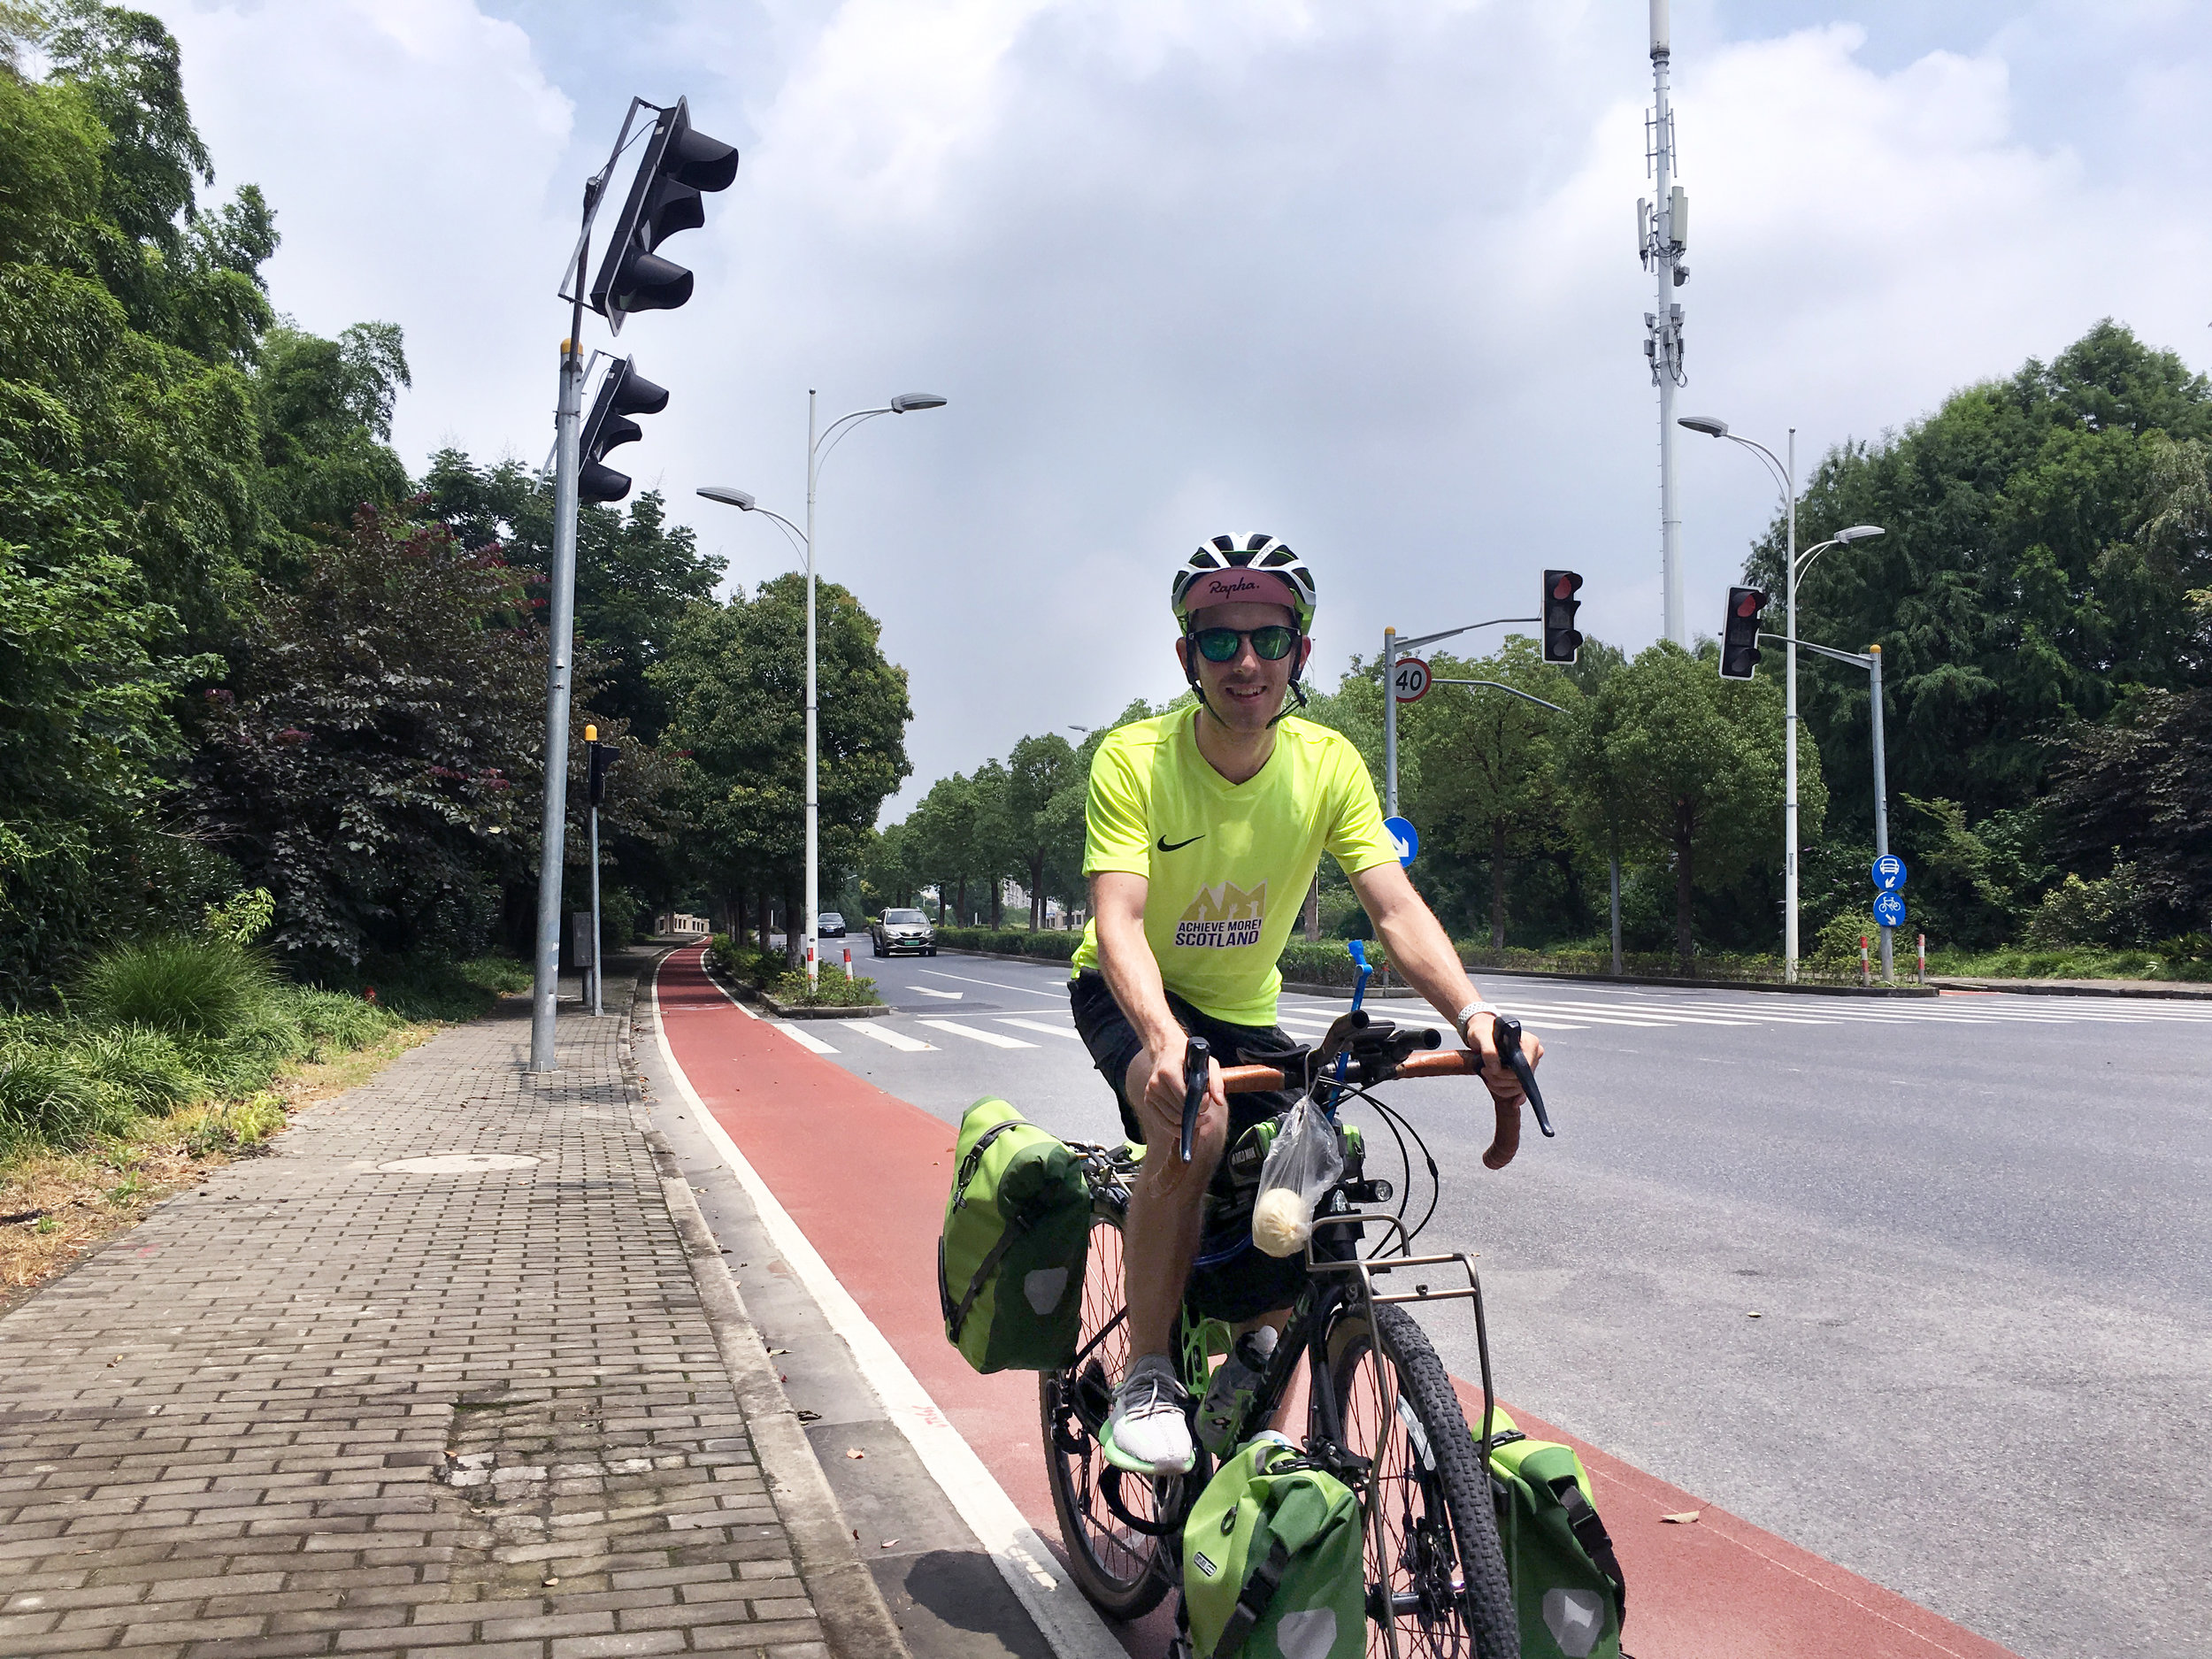 A test ride to 蛇山, or Snake Mountain nearby Shanghai.